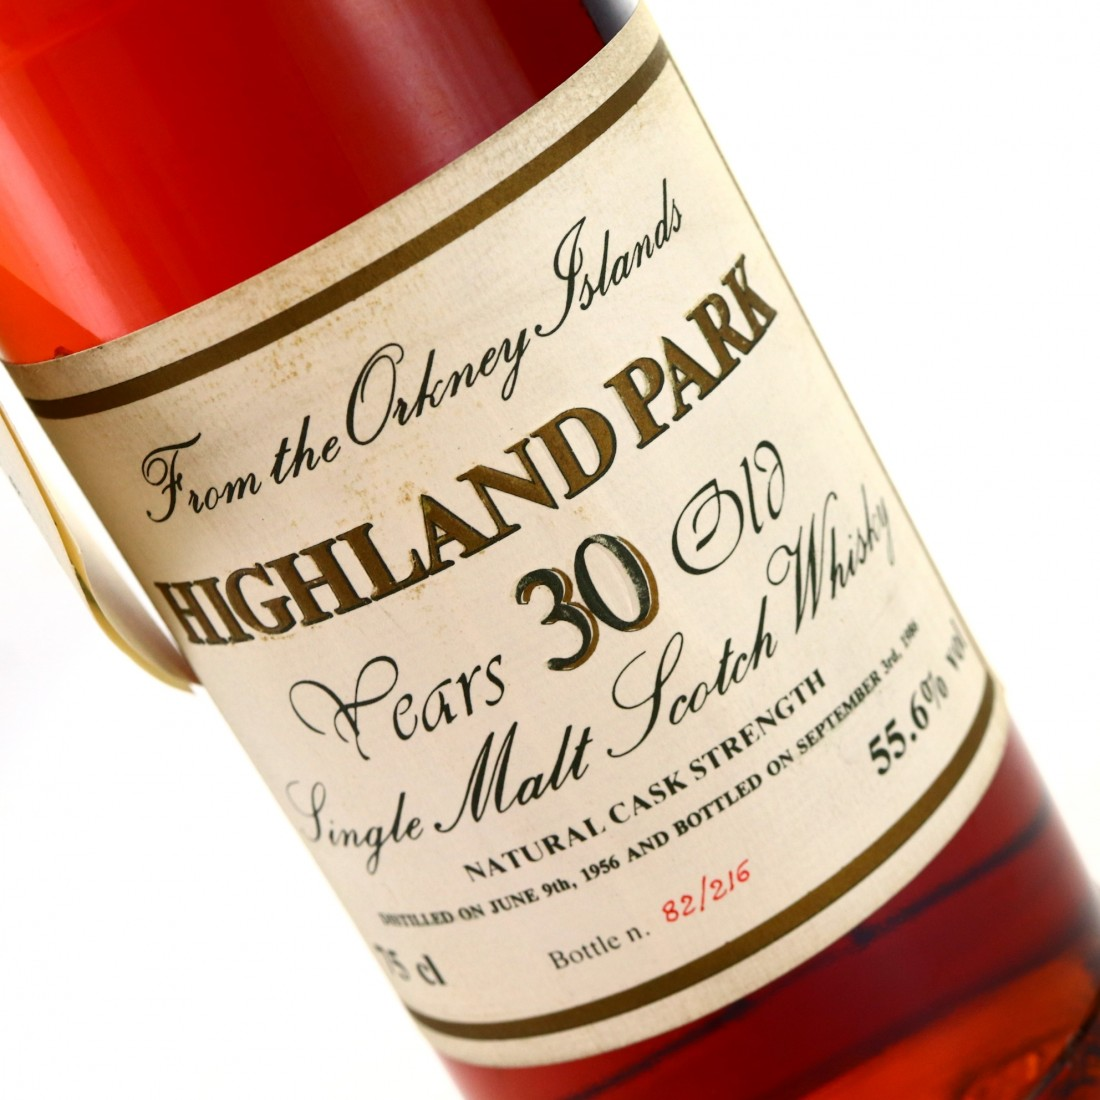 Highland Park 1956 Intertrade 30 Year Old Cask Strength